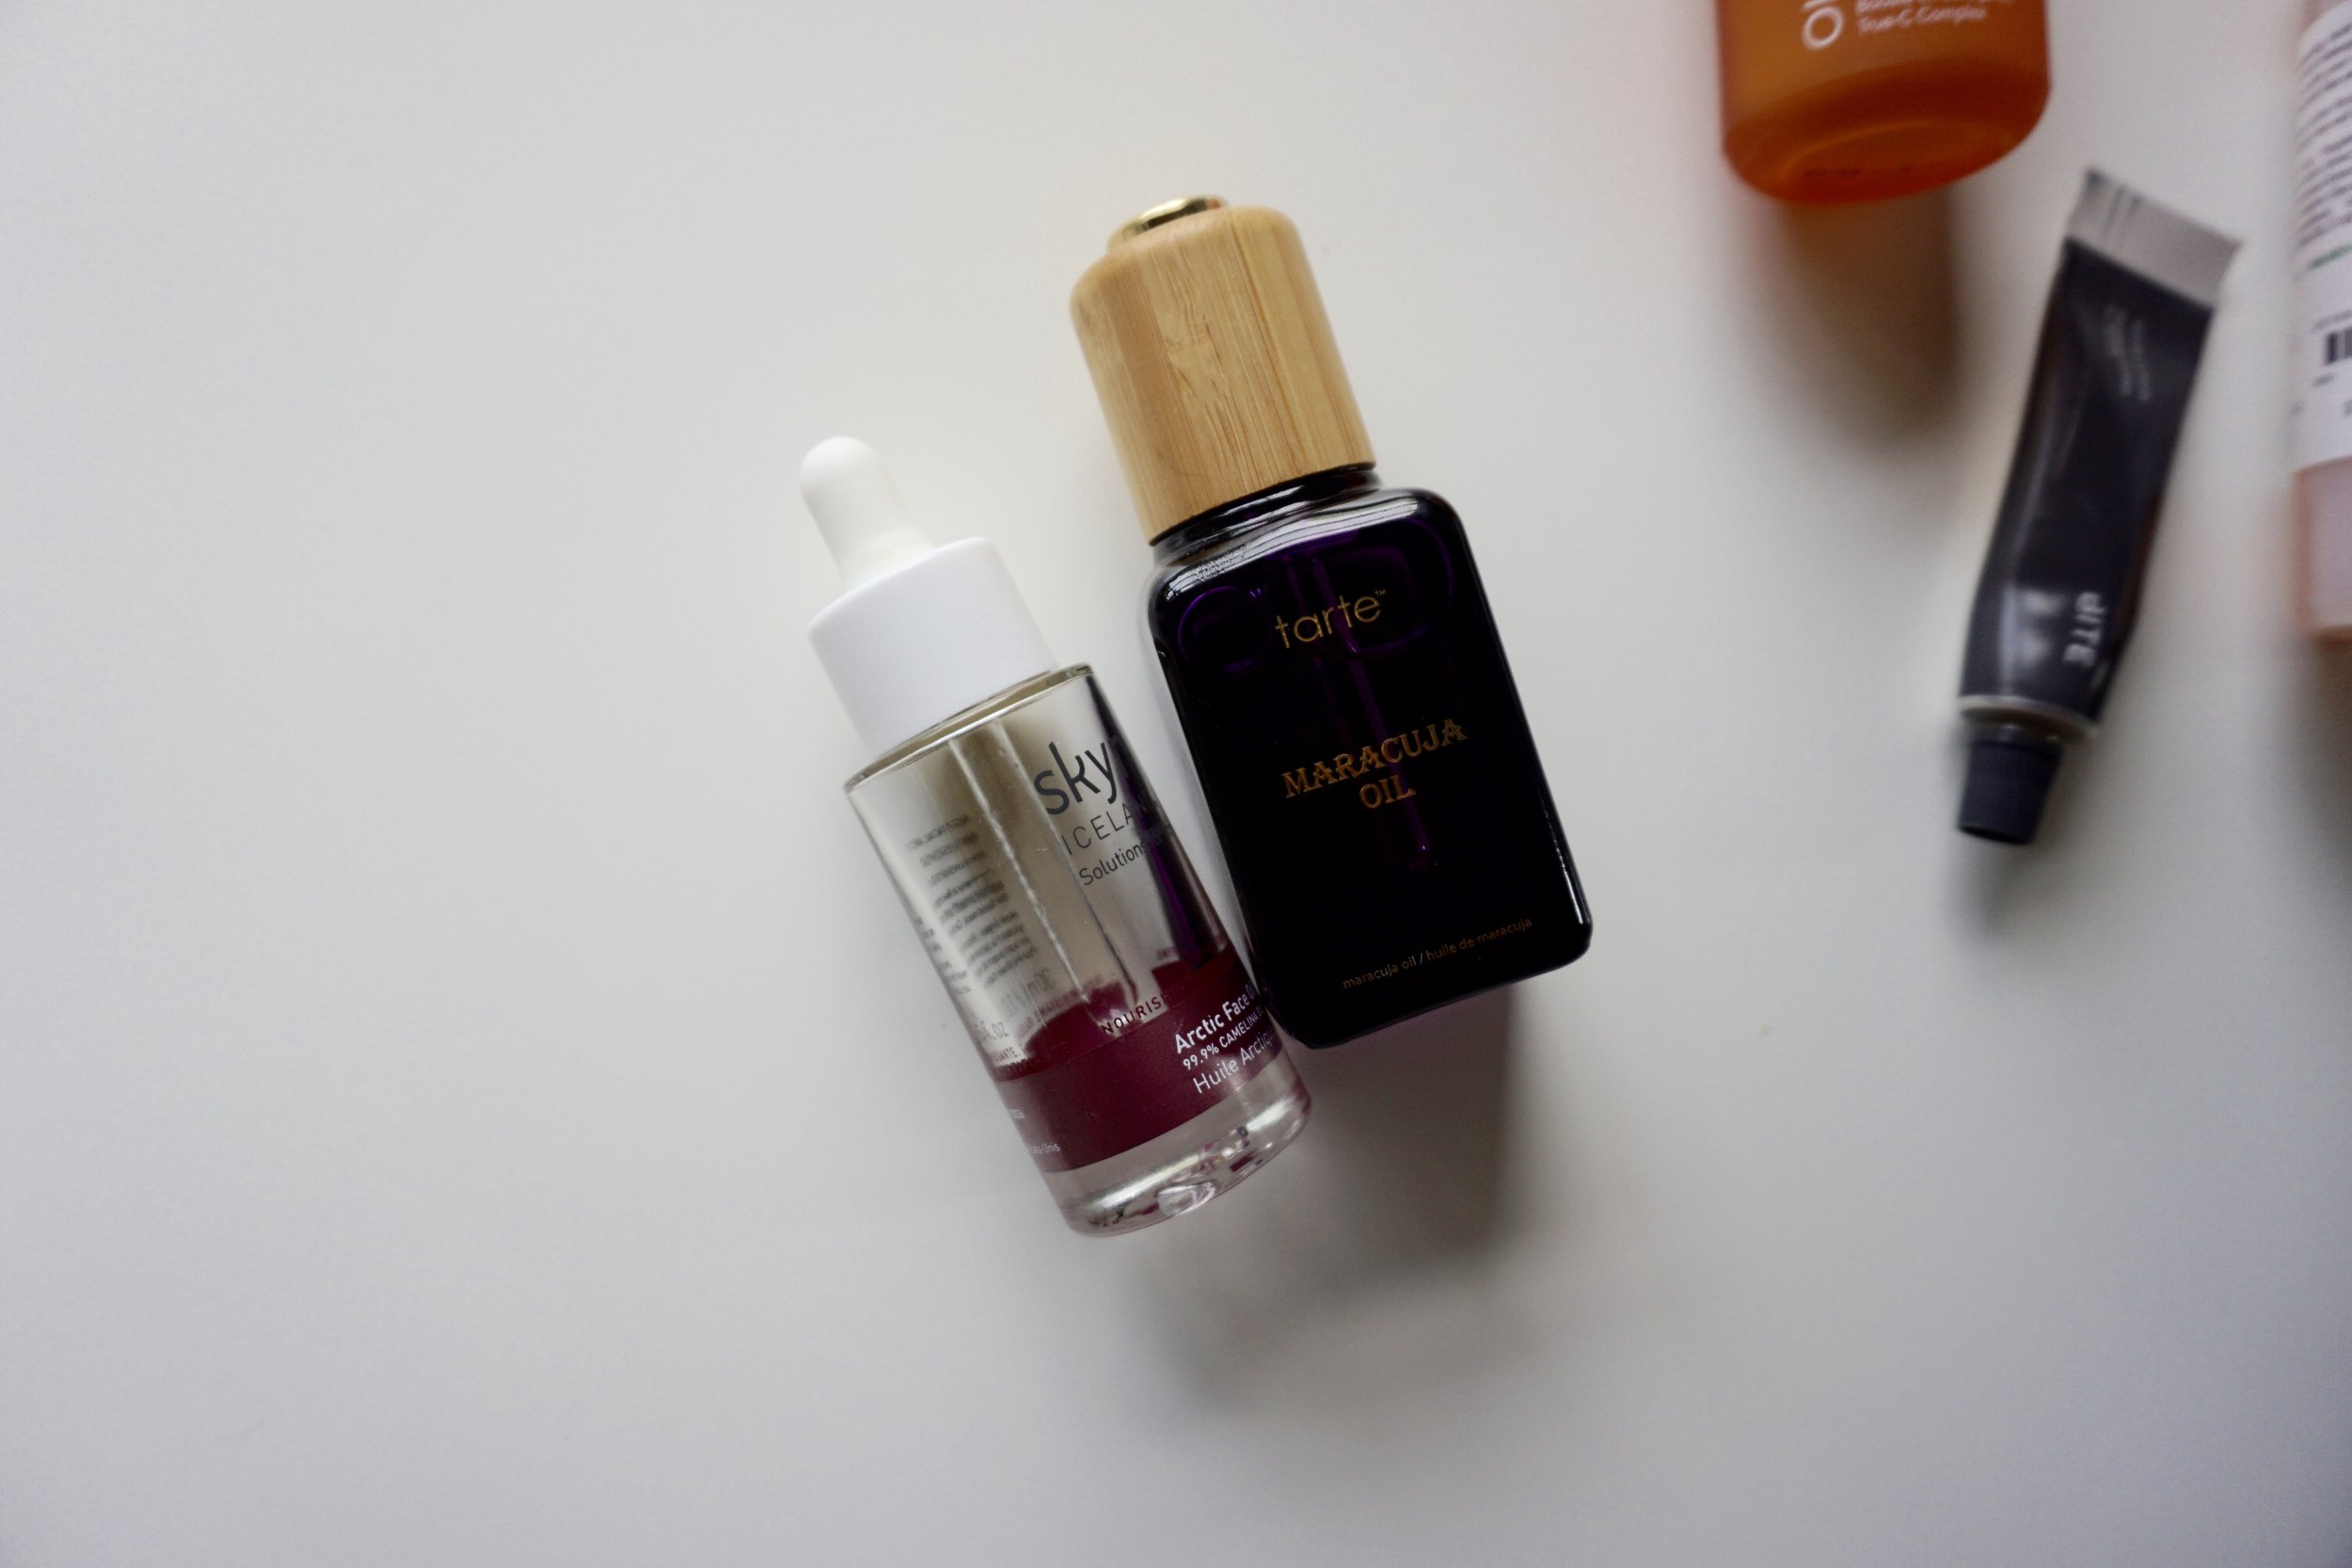 maracuja oil vs artic oil tarte vs skyn iceland